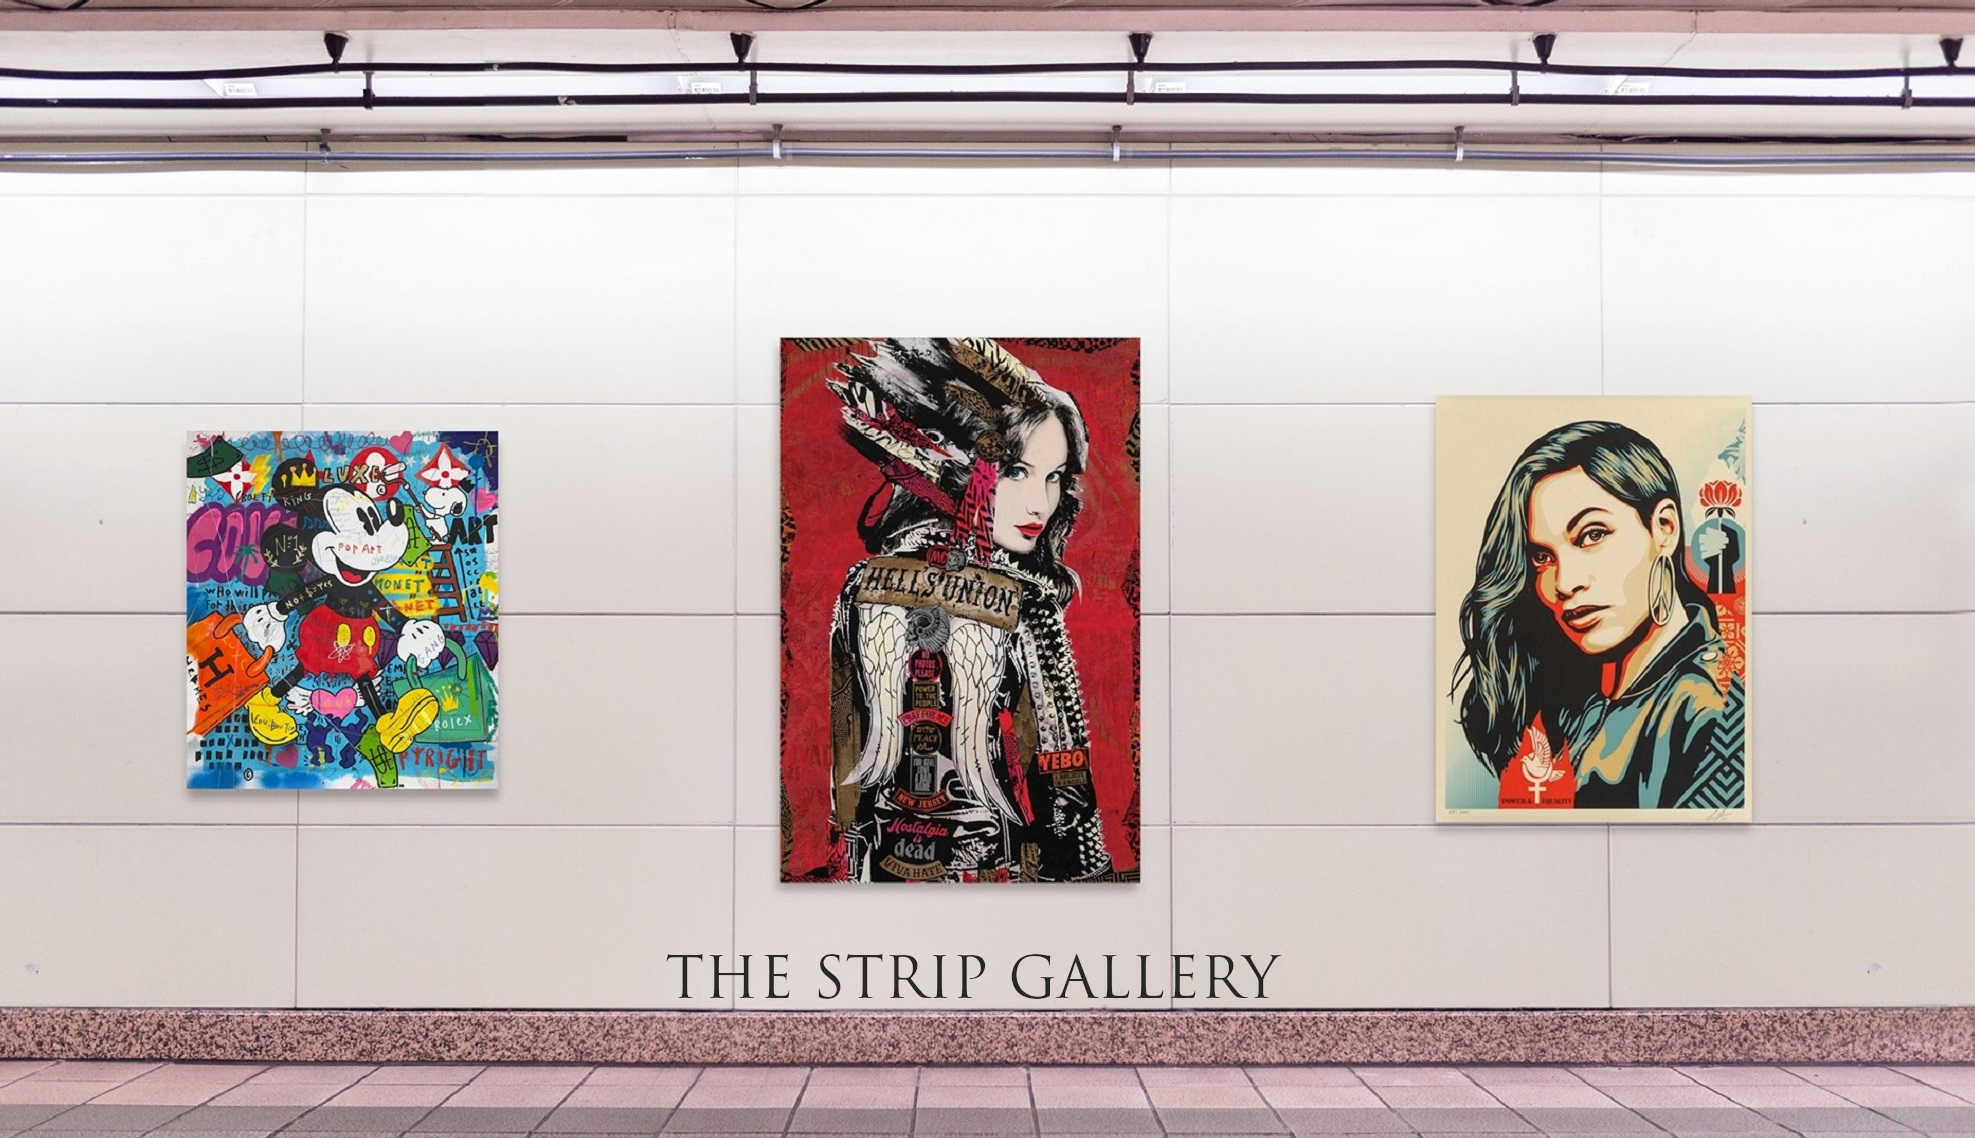 THE STRIP GALLERY